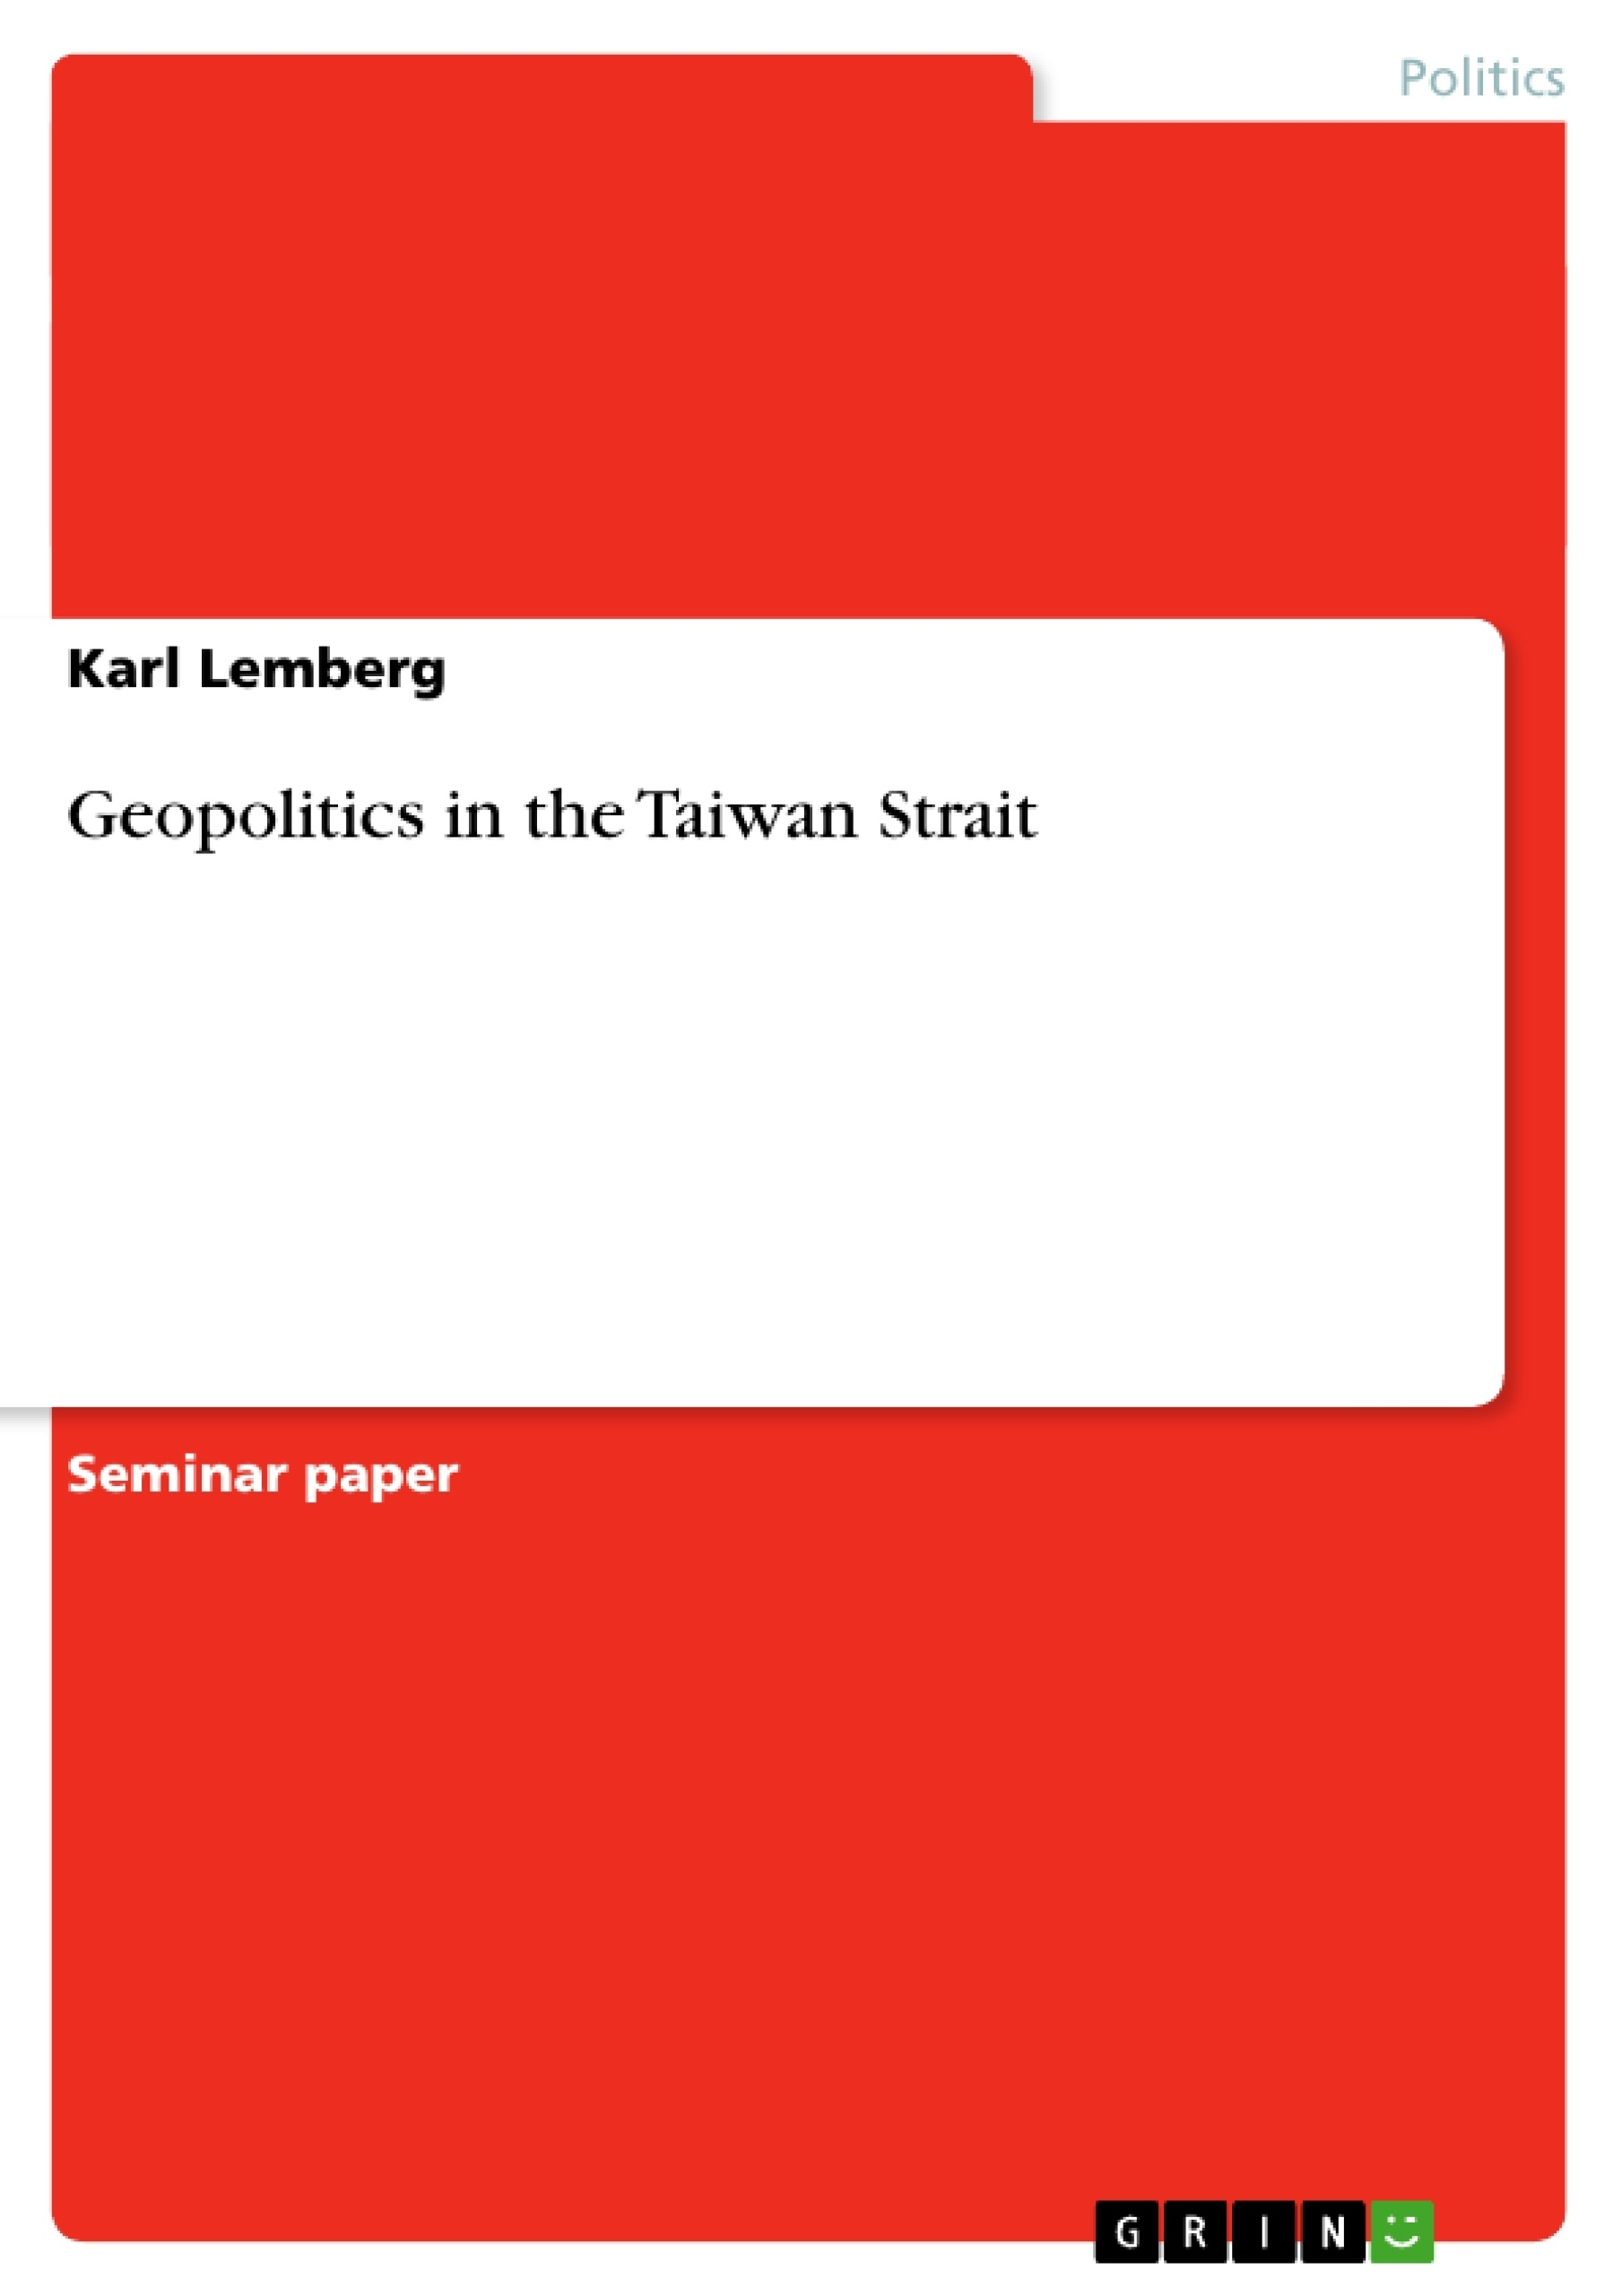 Title: Geopolitics in the Taiwan Strait